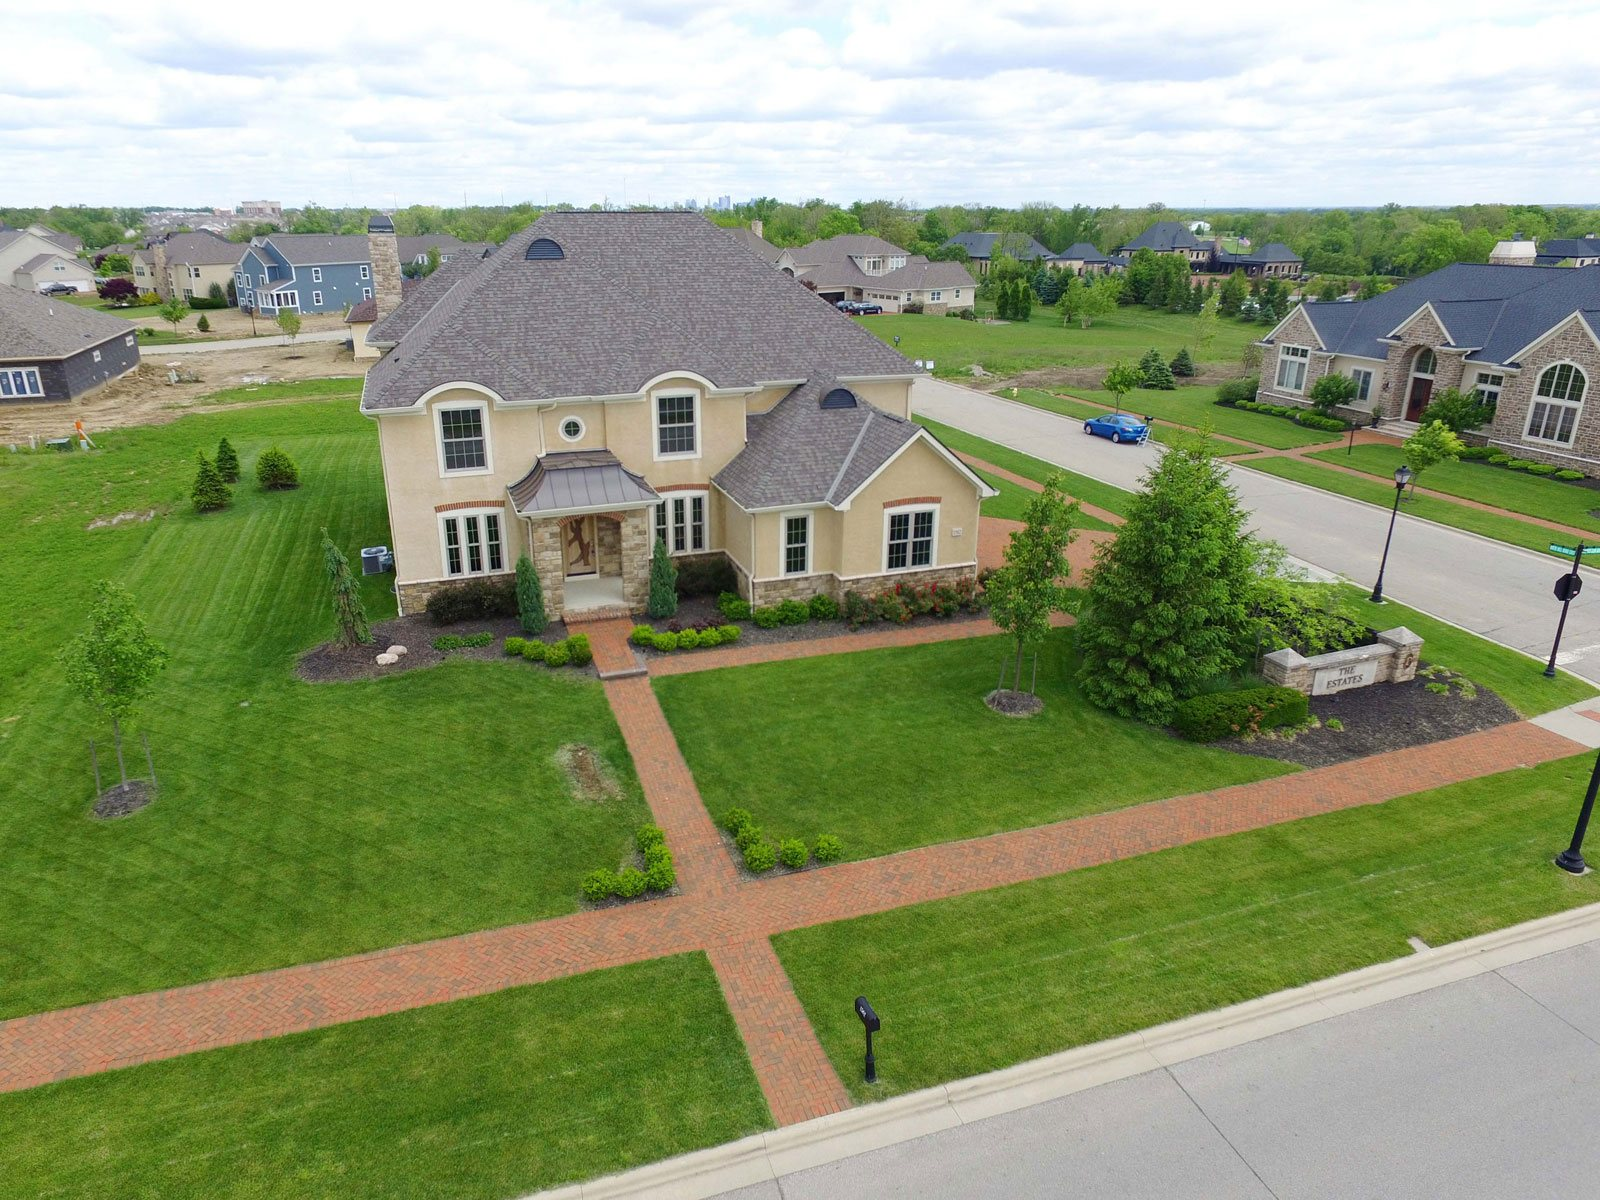 Residential Real Estate Drone Photography  Drone 614